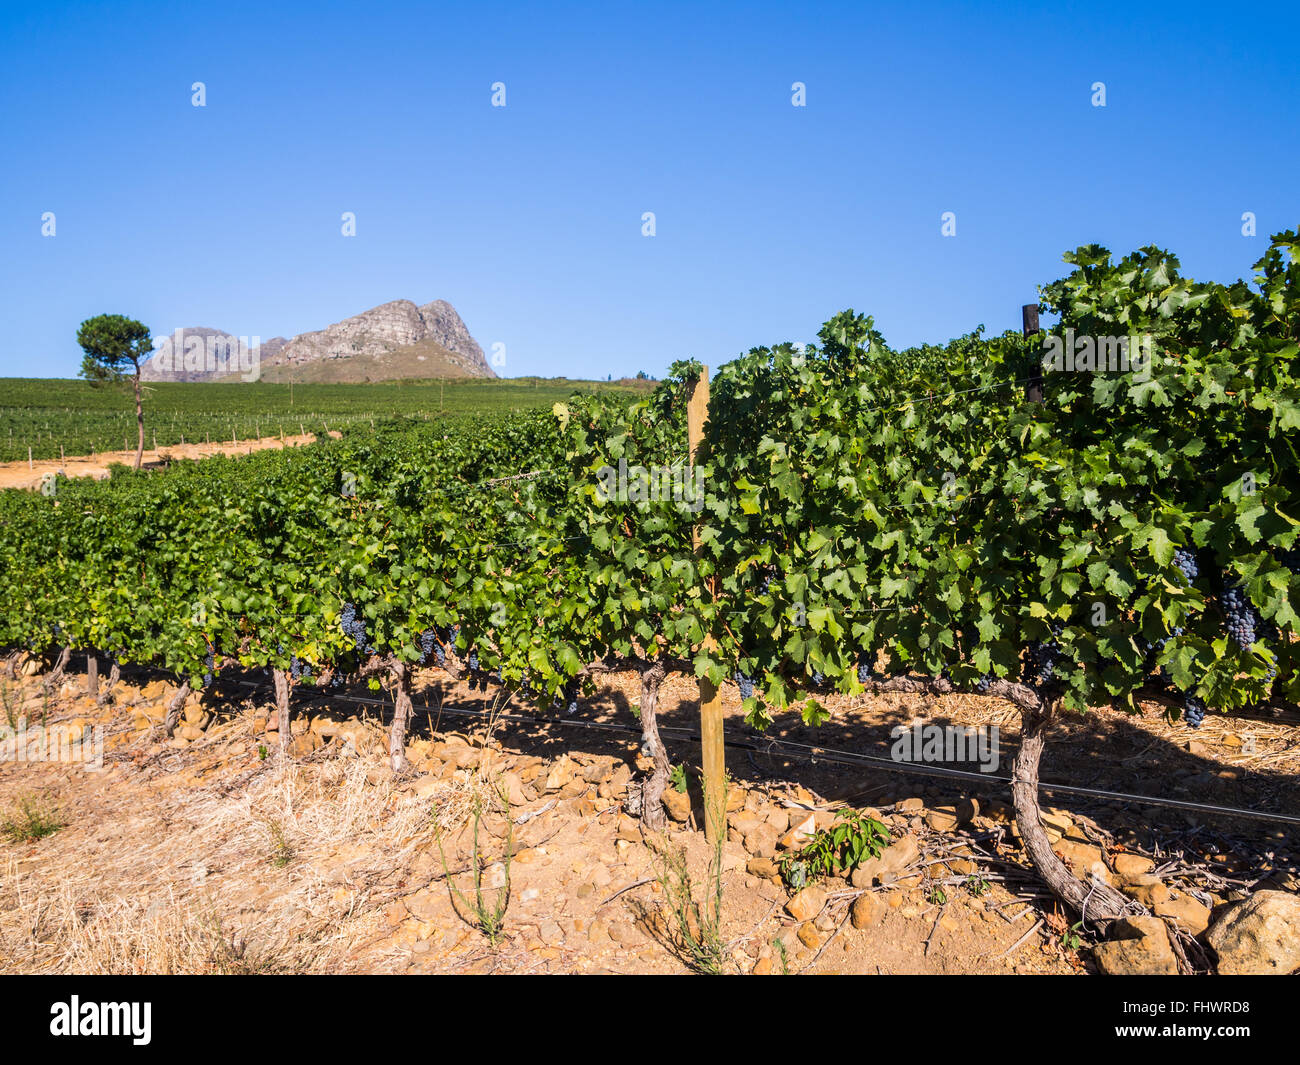 Vineyards close to Stellenbosch, Wester Cape in South Africa. - Stock Image